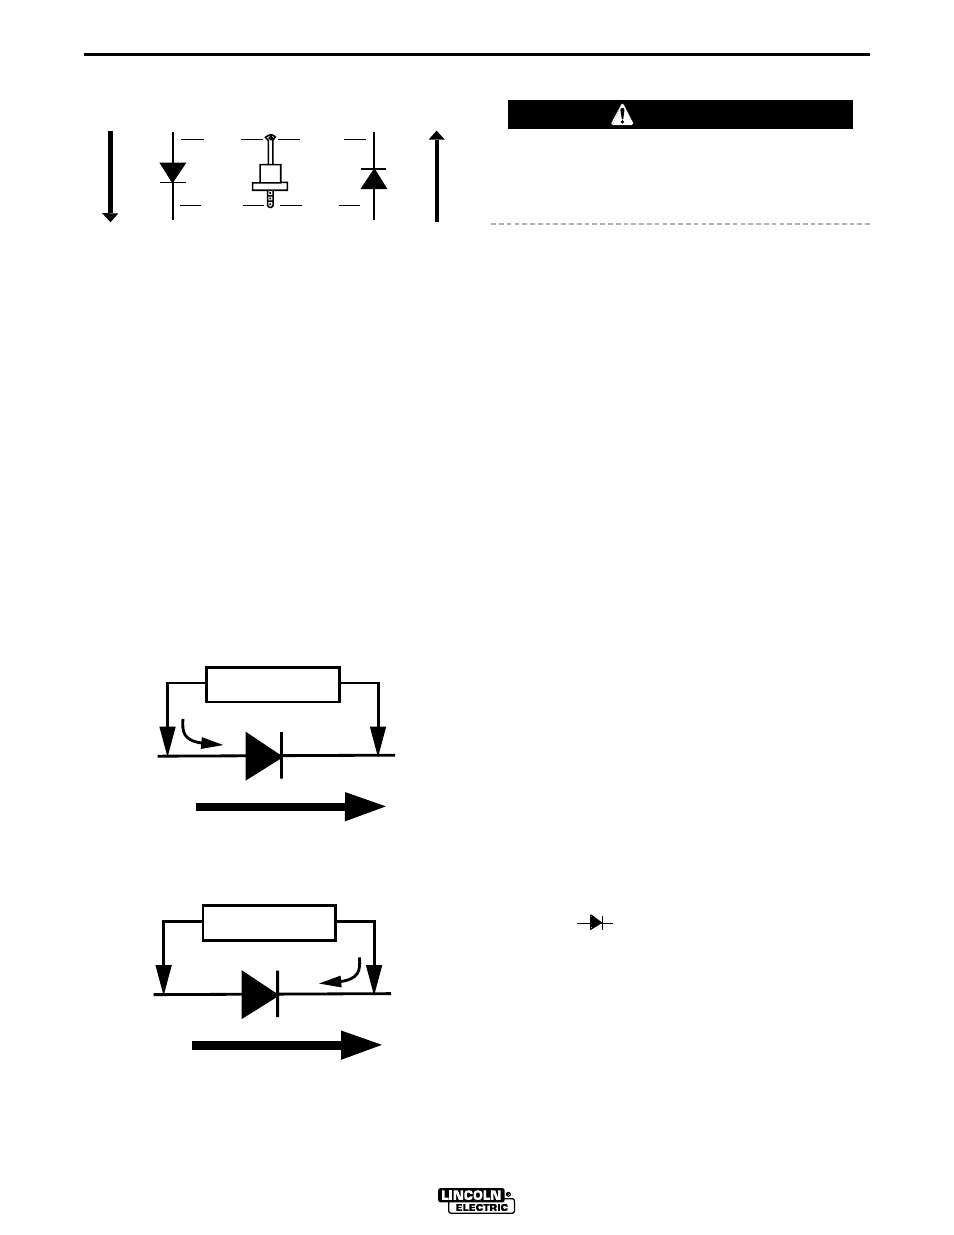 hight resolution of troubleshooting caution lincoln electric im568 sam 400 perkins diesel user manual page